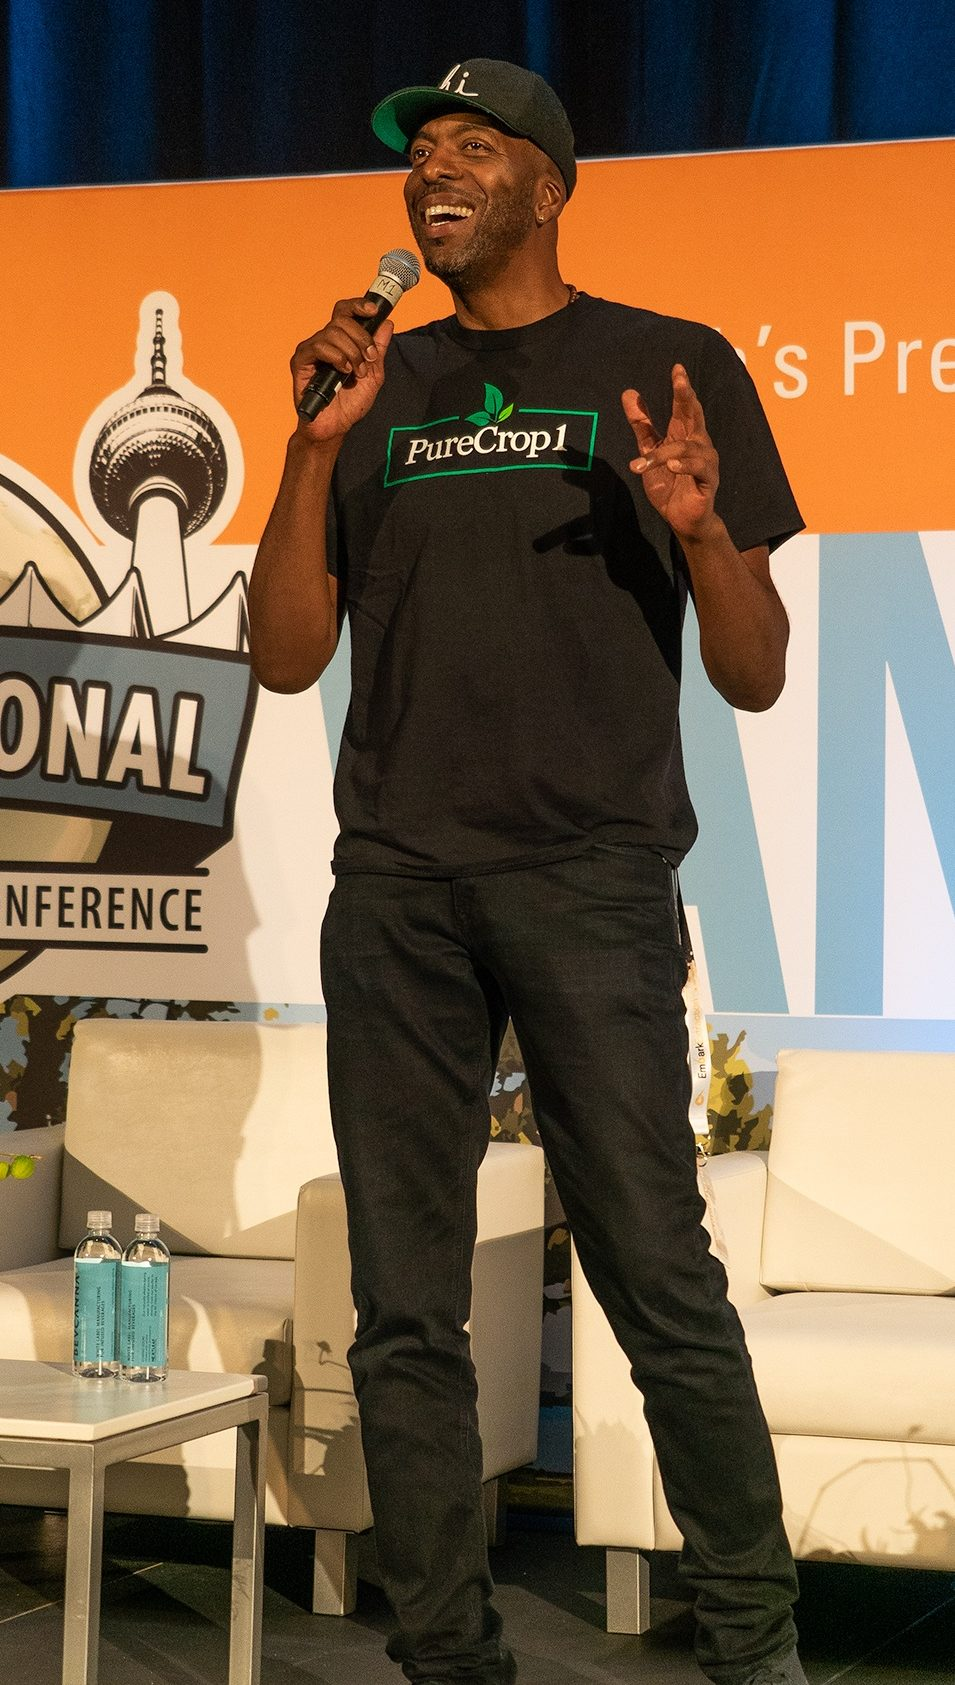 International Cannabis Business Conference John Salley